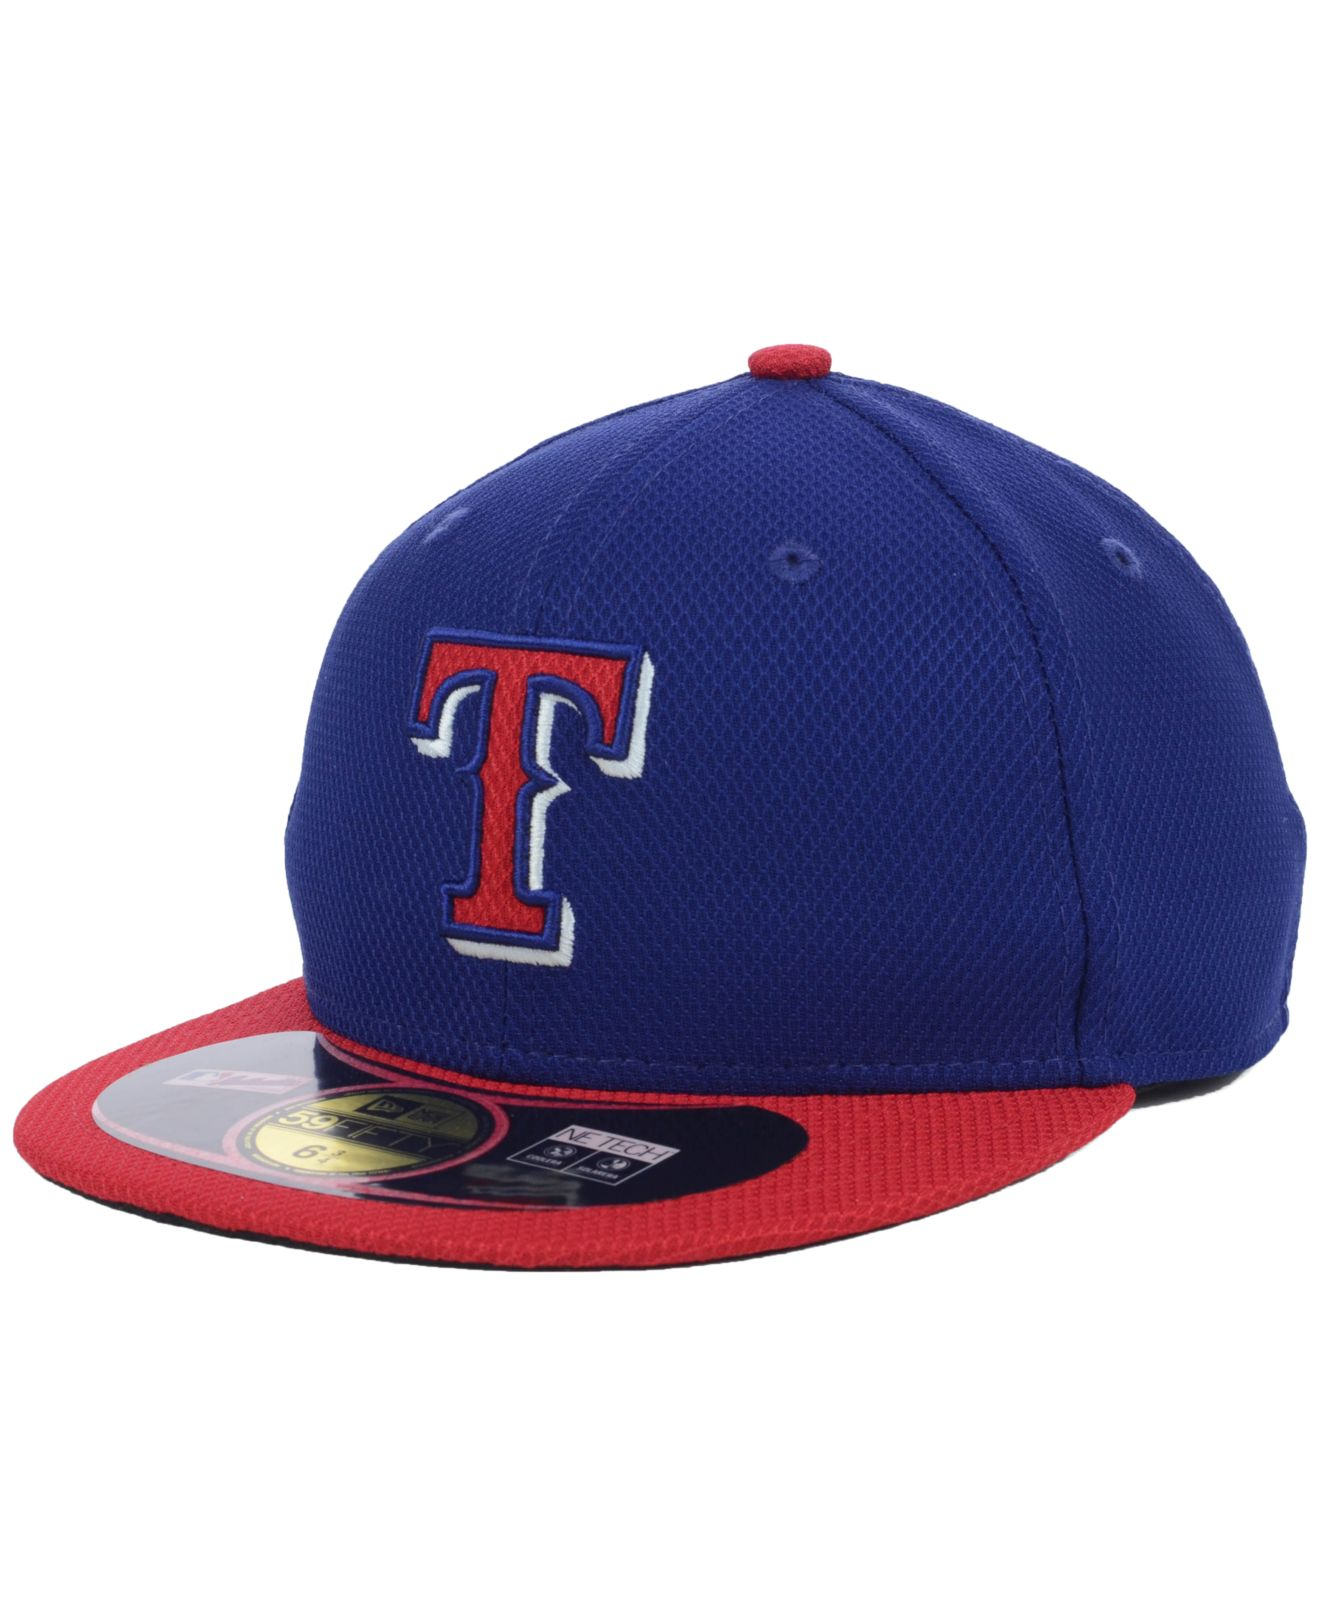 Lyst - Ktz Kids  Texas Rangers Mlb Diamond Era 59fifty Cap in Blue ... d0aee8f18928